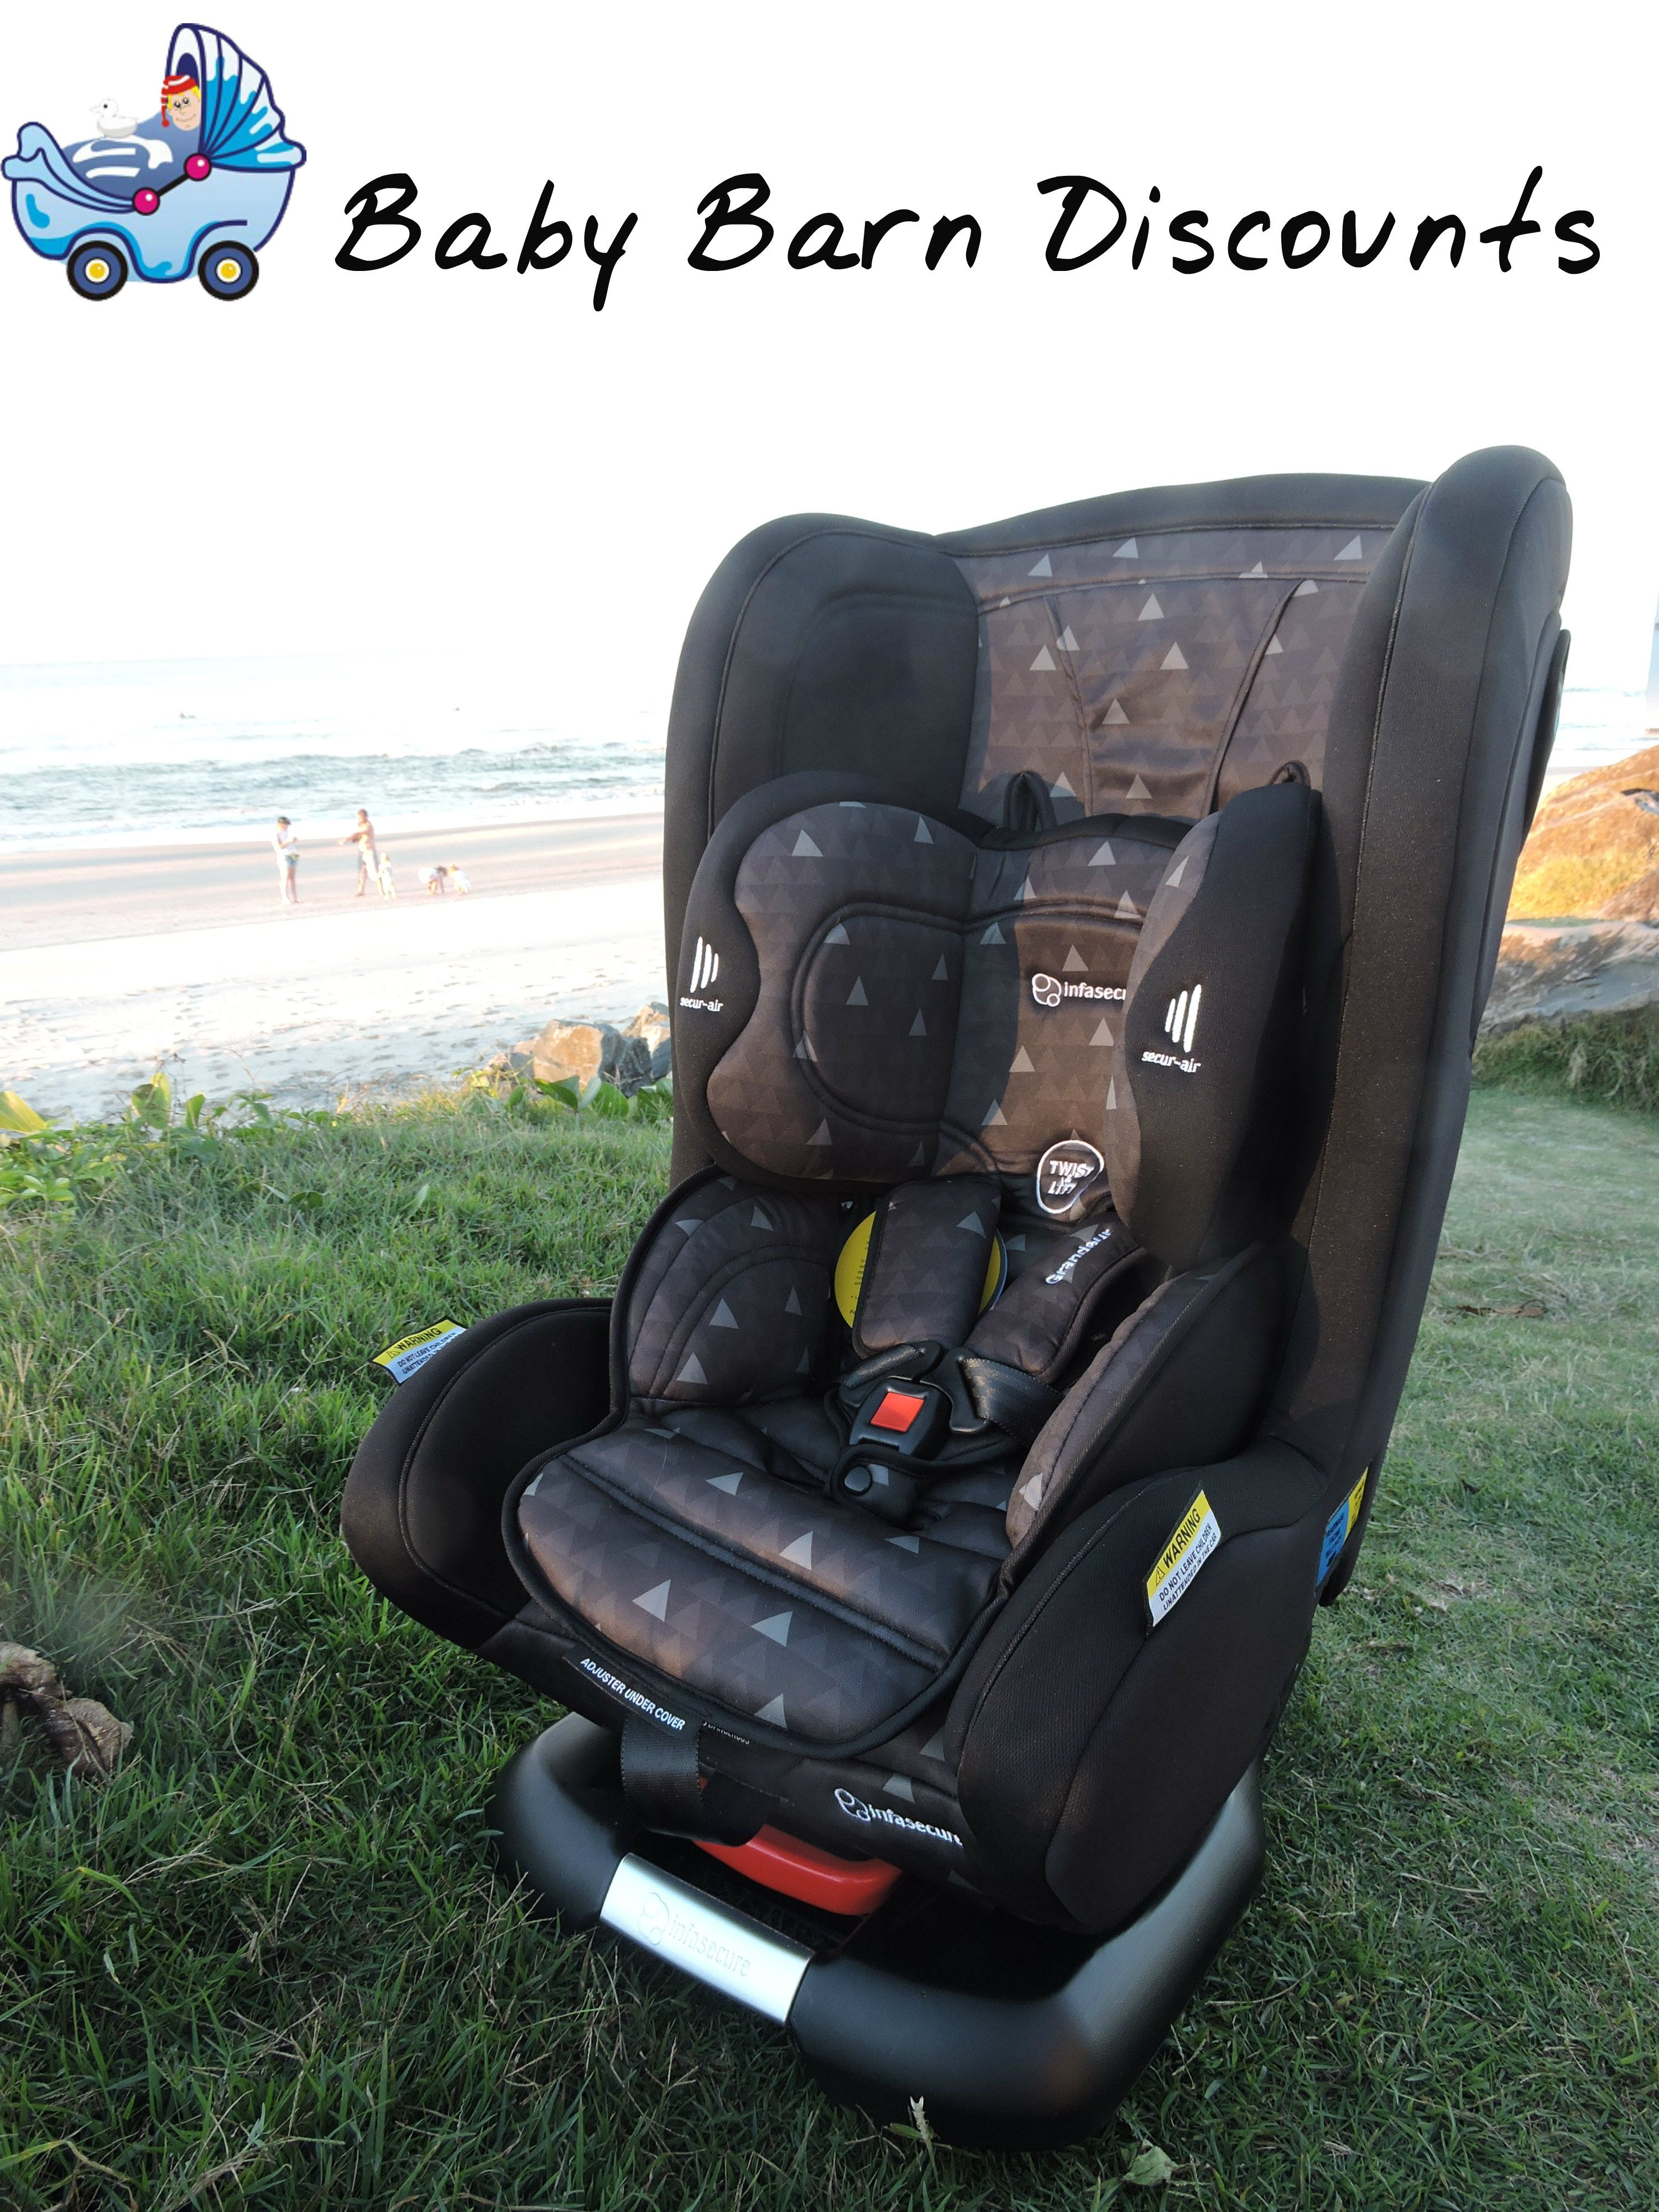 Baby Capsule Convertible Car Seat Infa Secure Grandeur Treo Convertible Carseat Allows For